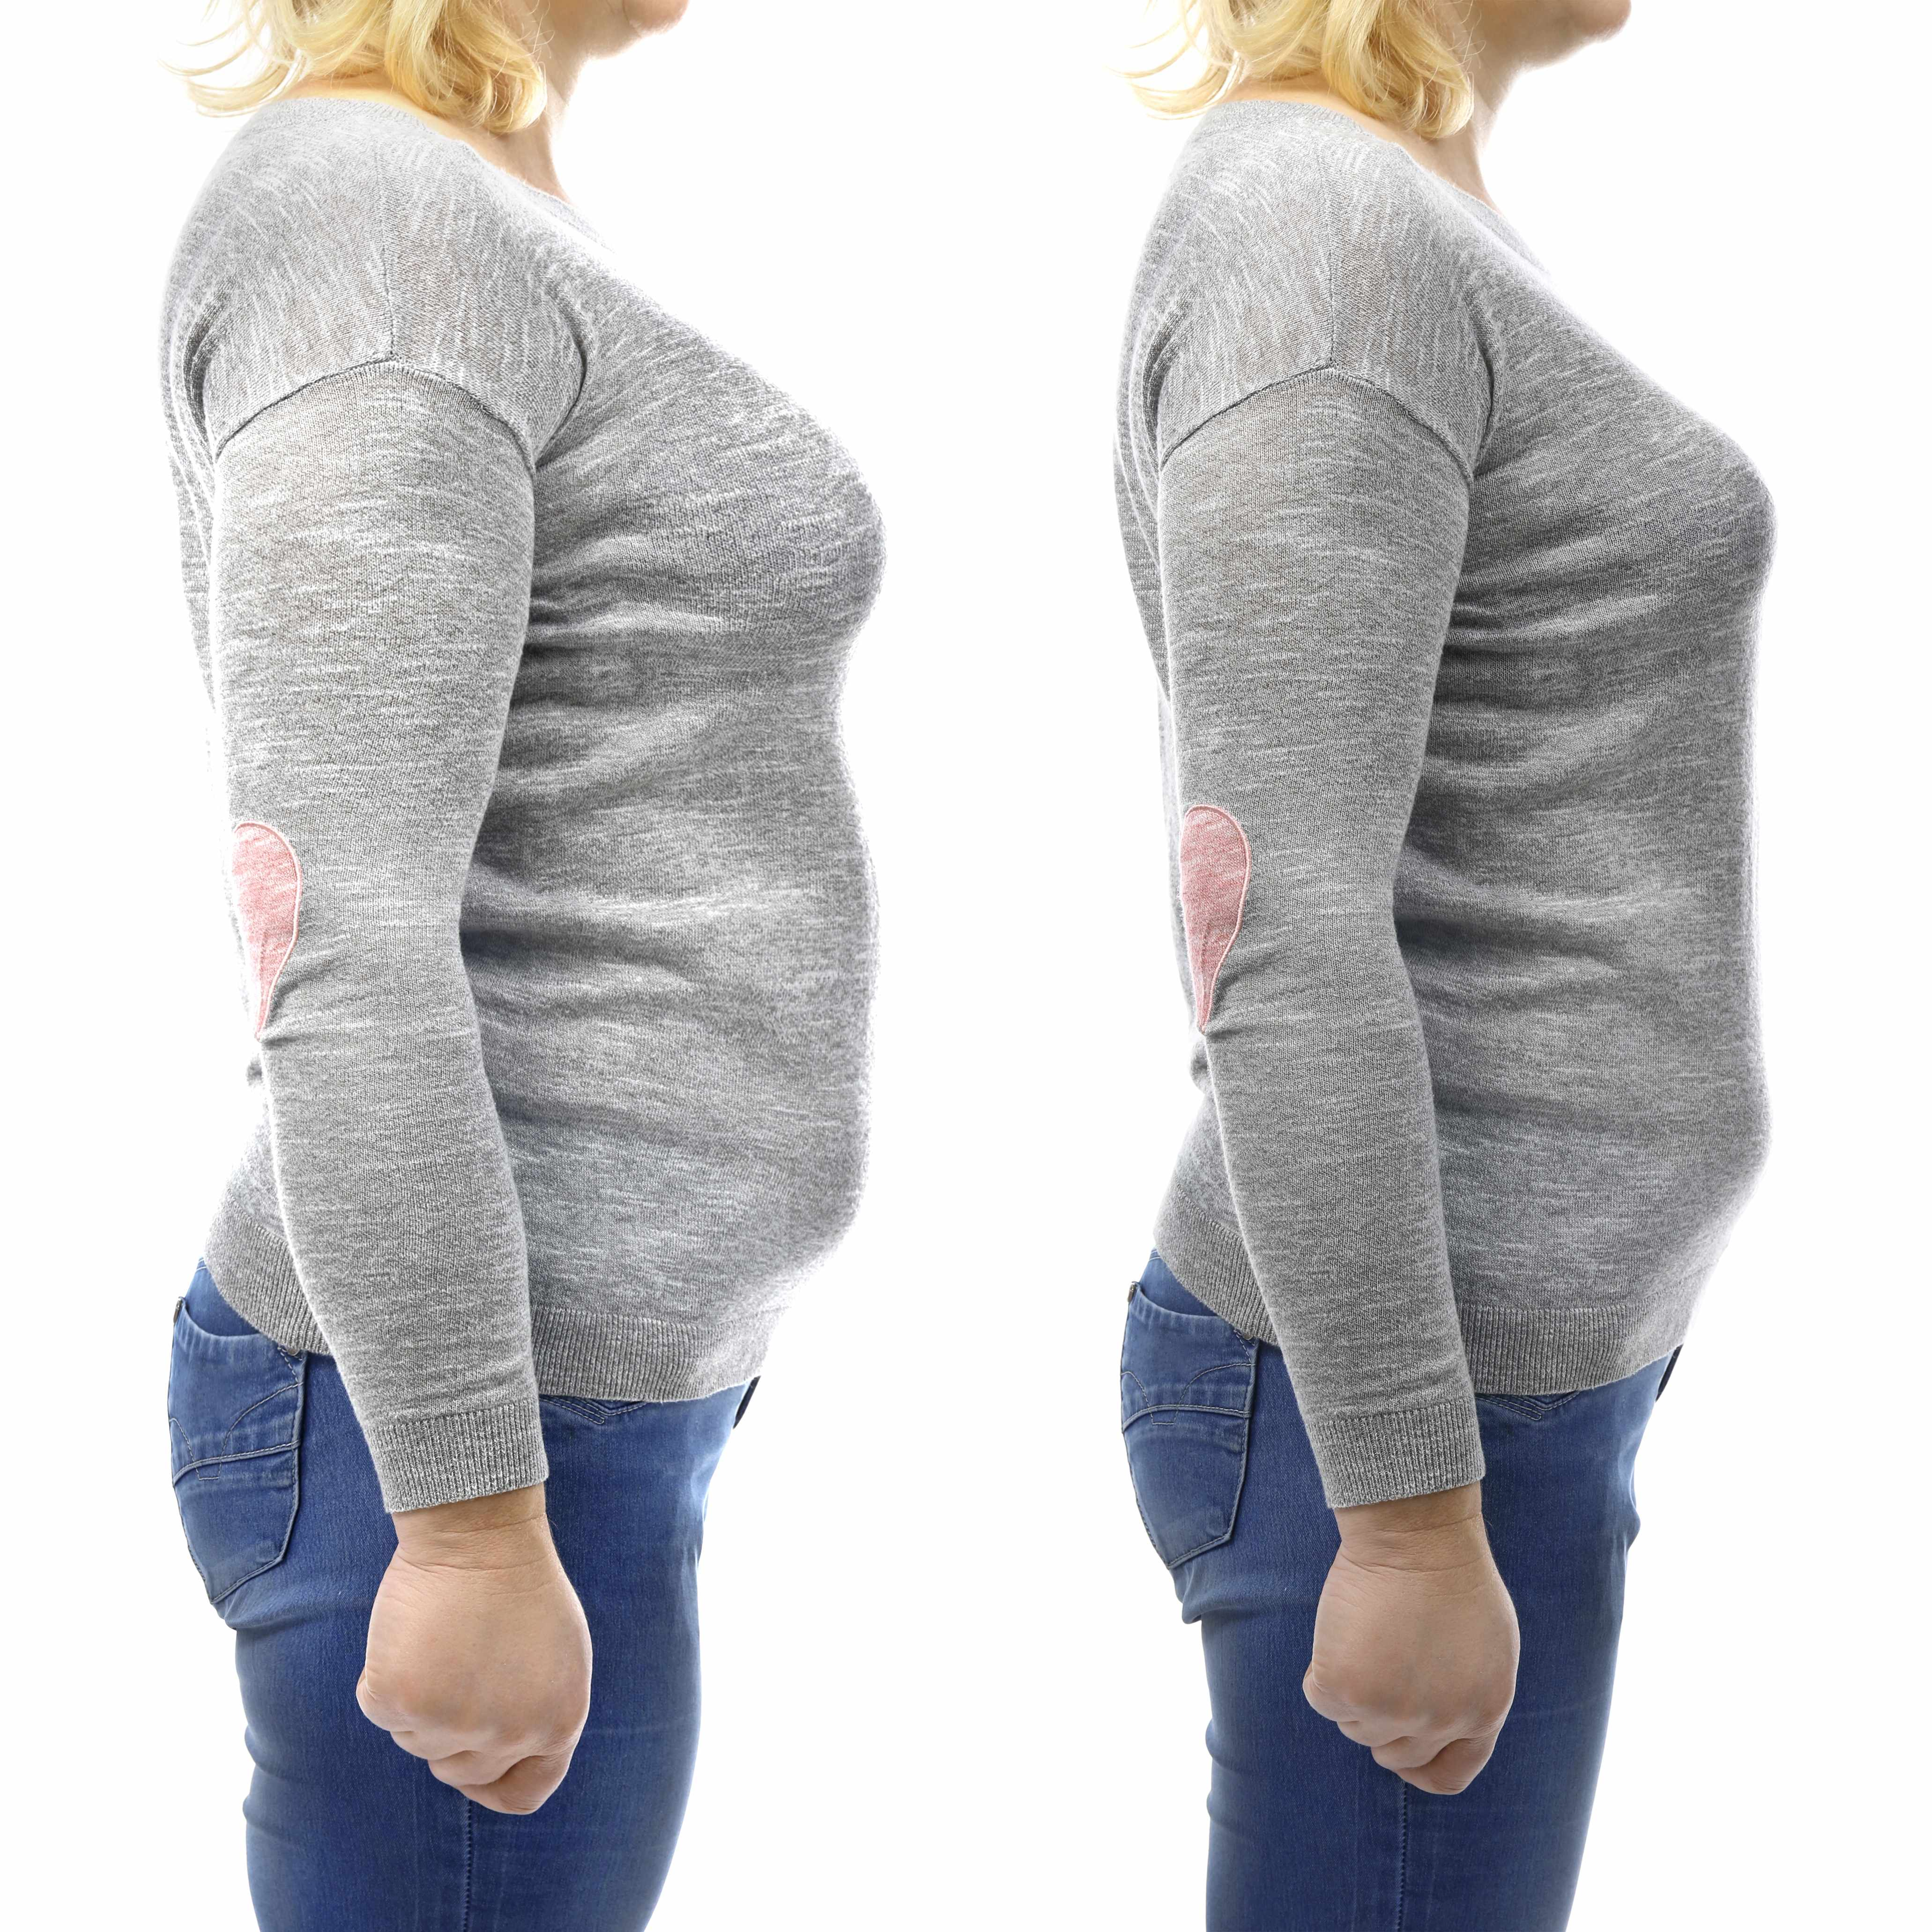 three side views of a woman in the process of losing weight, especially around the belly